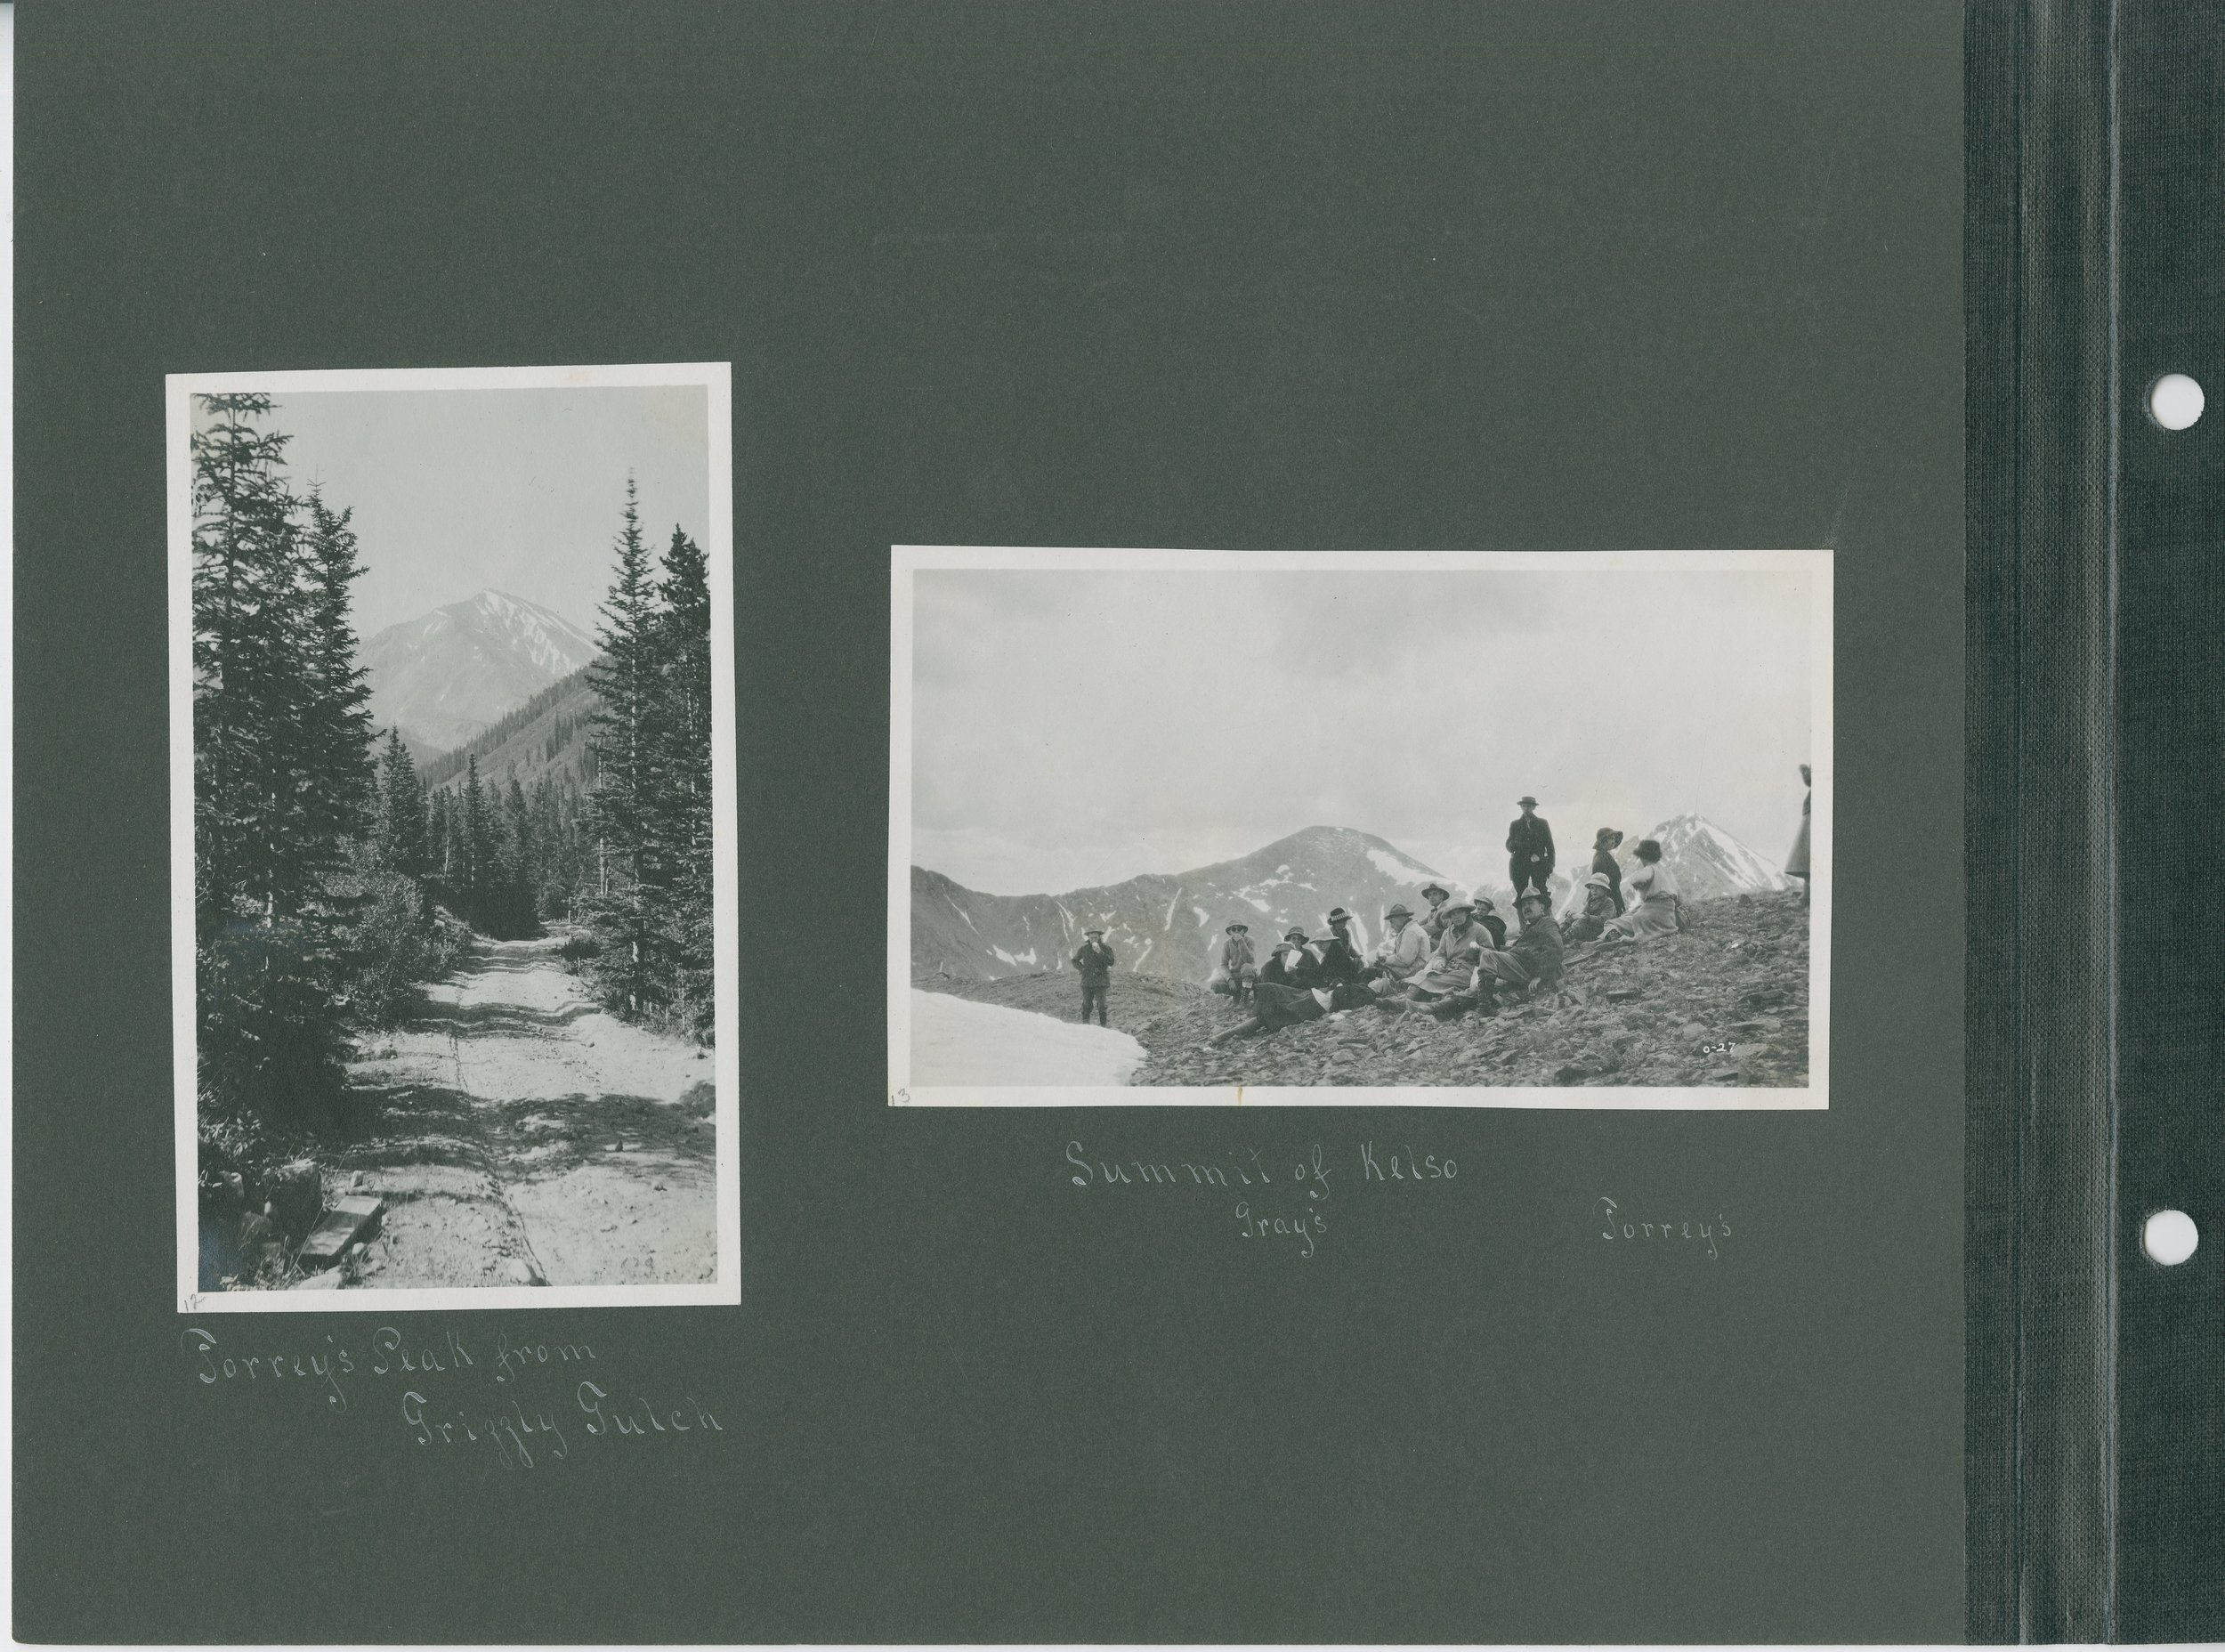 Left: Torrey's Peak from Grizzly Gulch, Right: Summit of Kelso